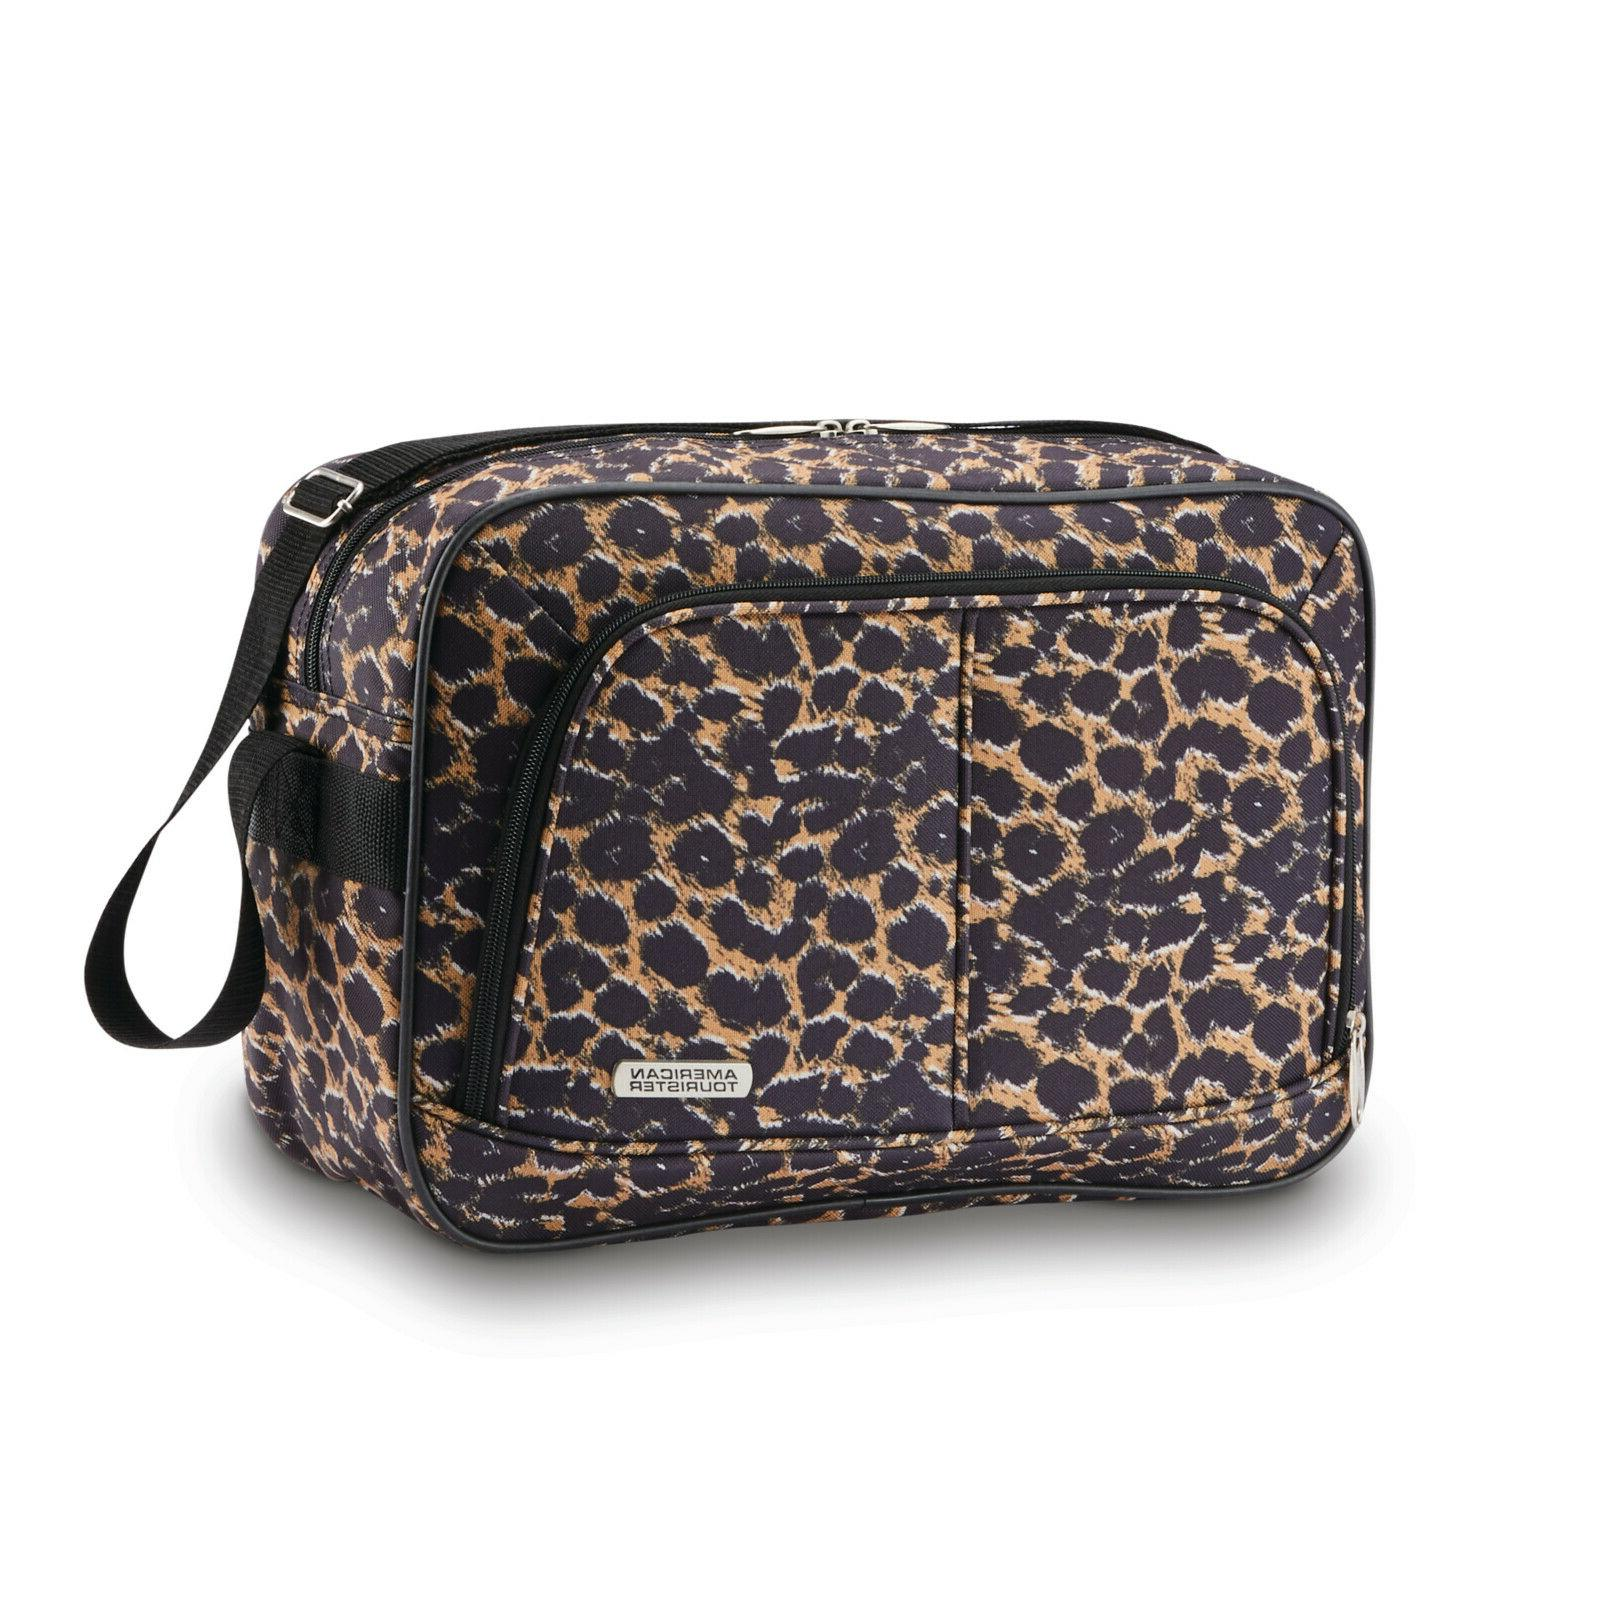 American Spinner Luggage Set Leopard